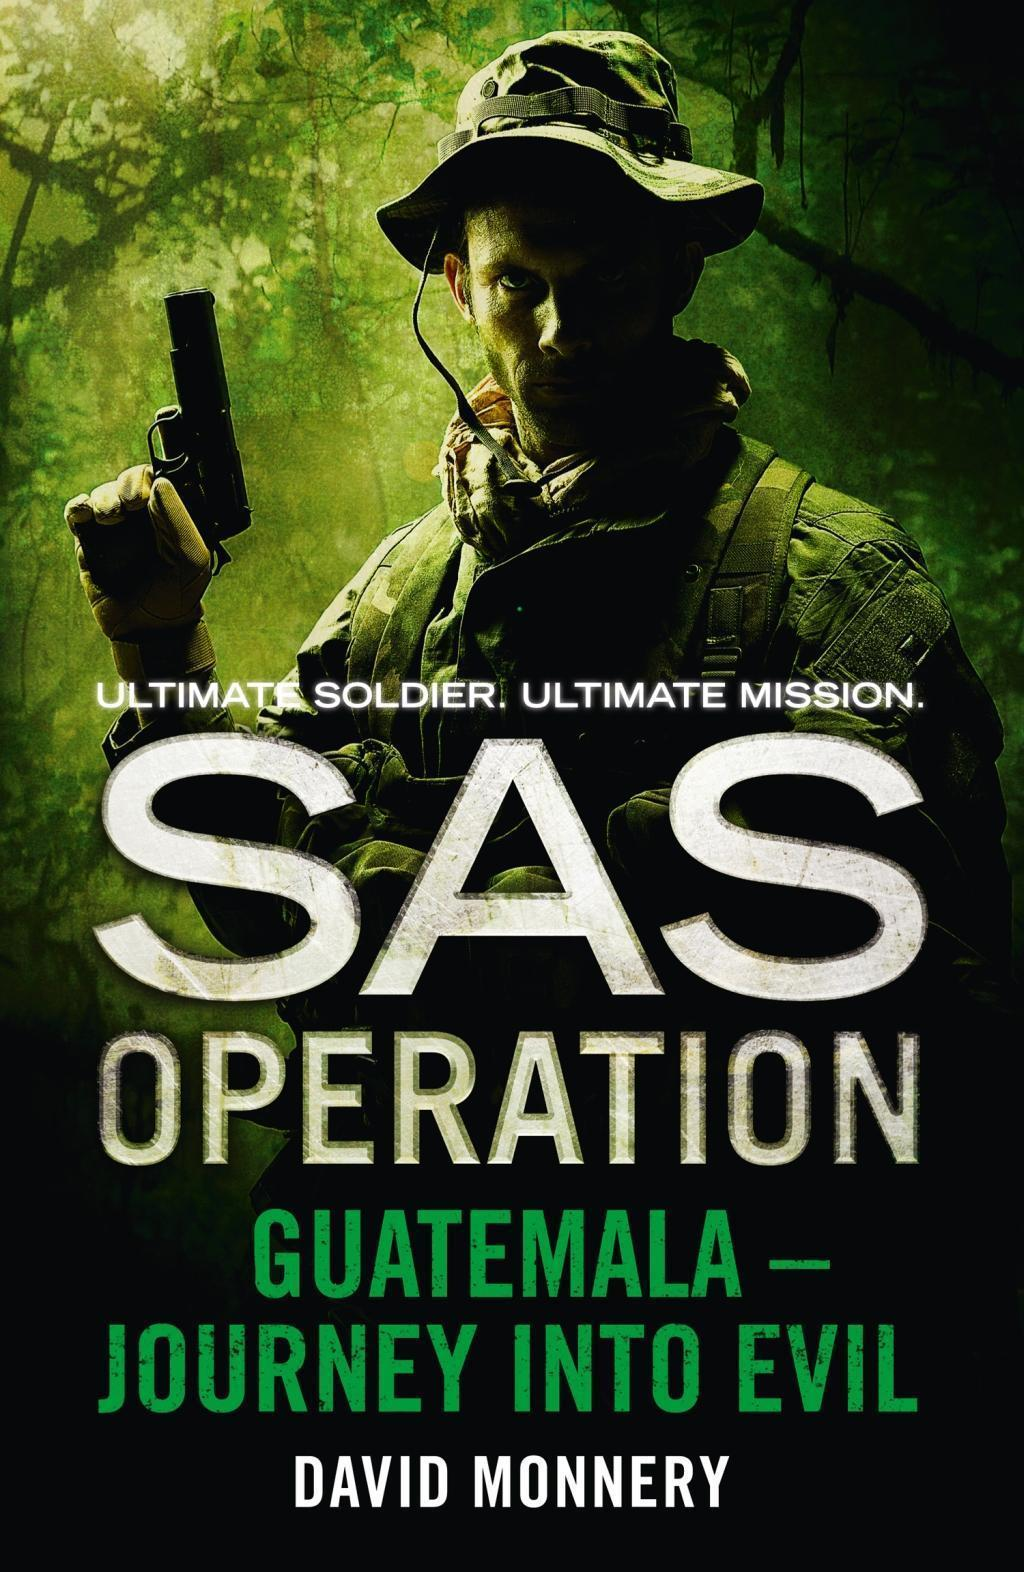 Guatemala - Journey into Evil (SAS Operation)